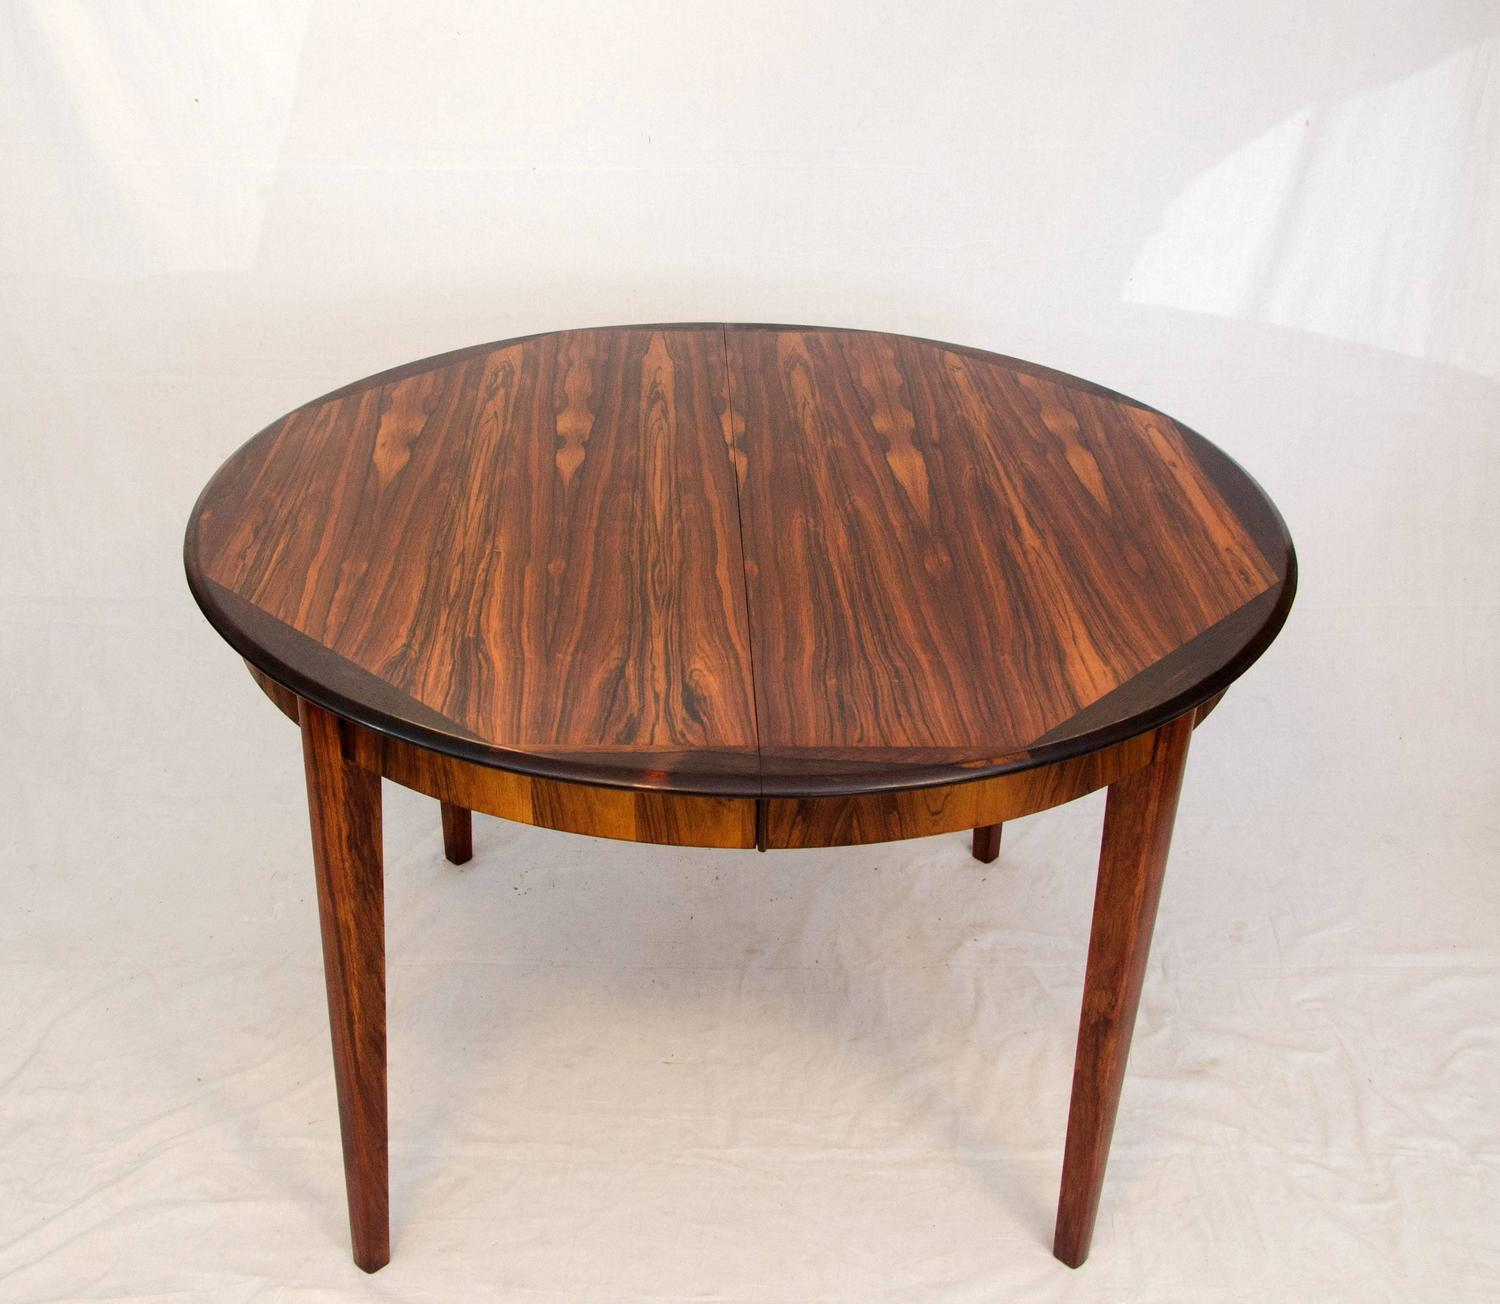 Danish Round Rosewood Dining Table Two Skirted Leaves  : 638RosewoodRoundDiningTableC3z from www.1stdibs.com size 1500 x 1304 jpeg 142kB